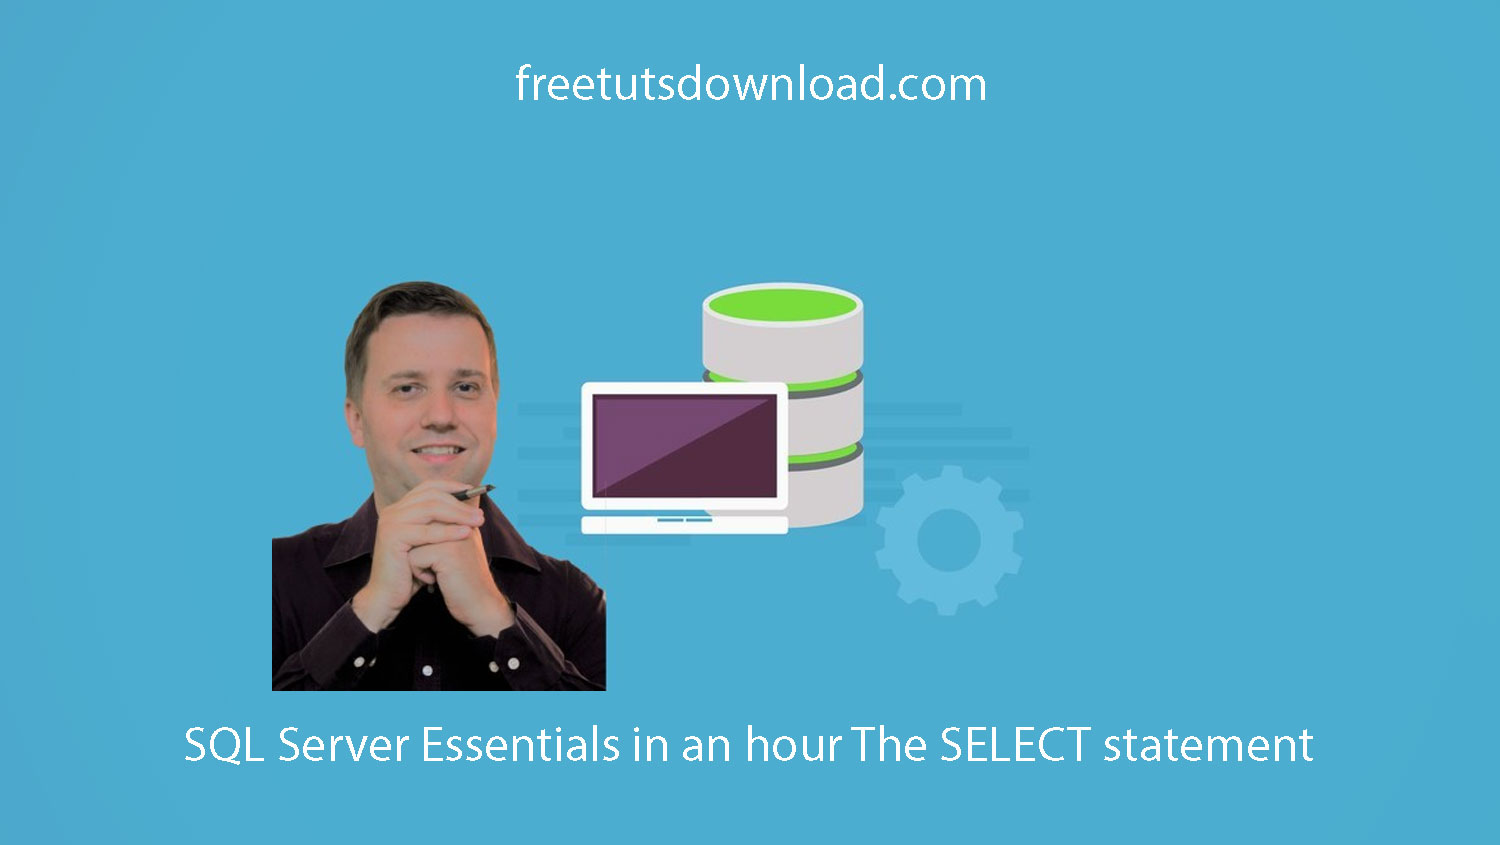 SQL Server Essentials in an hour The SELECT statement